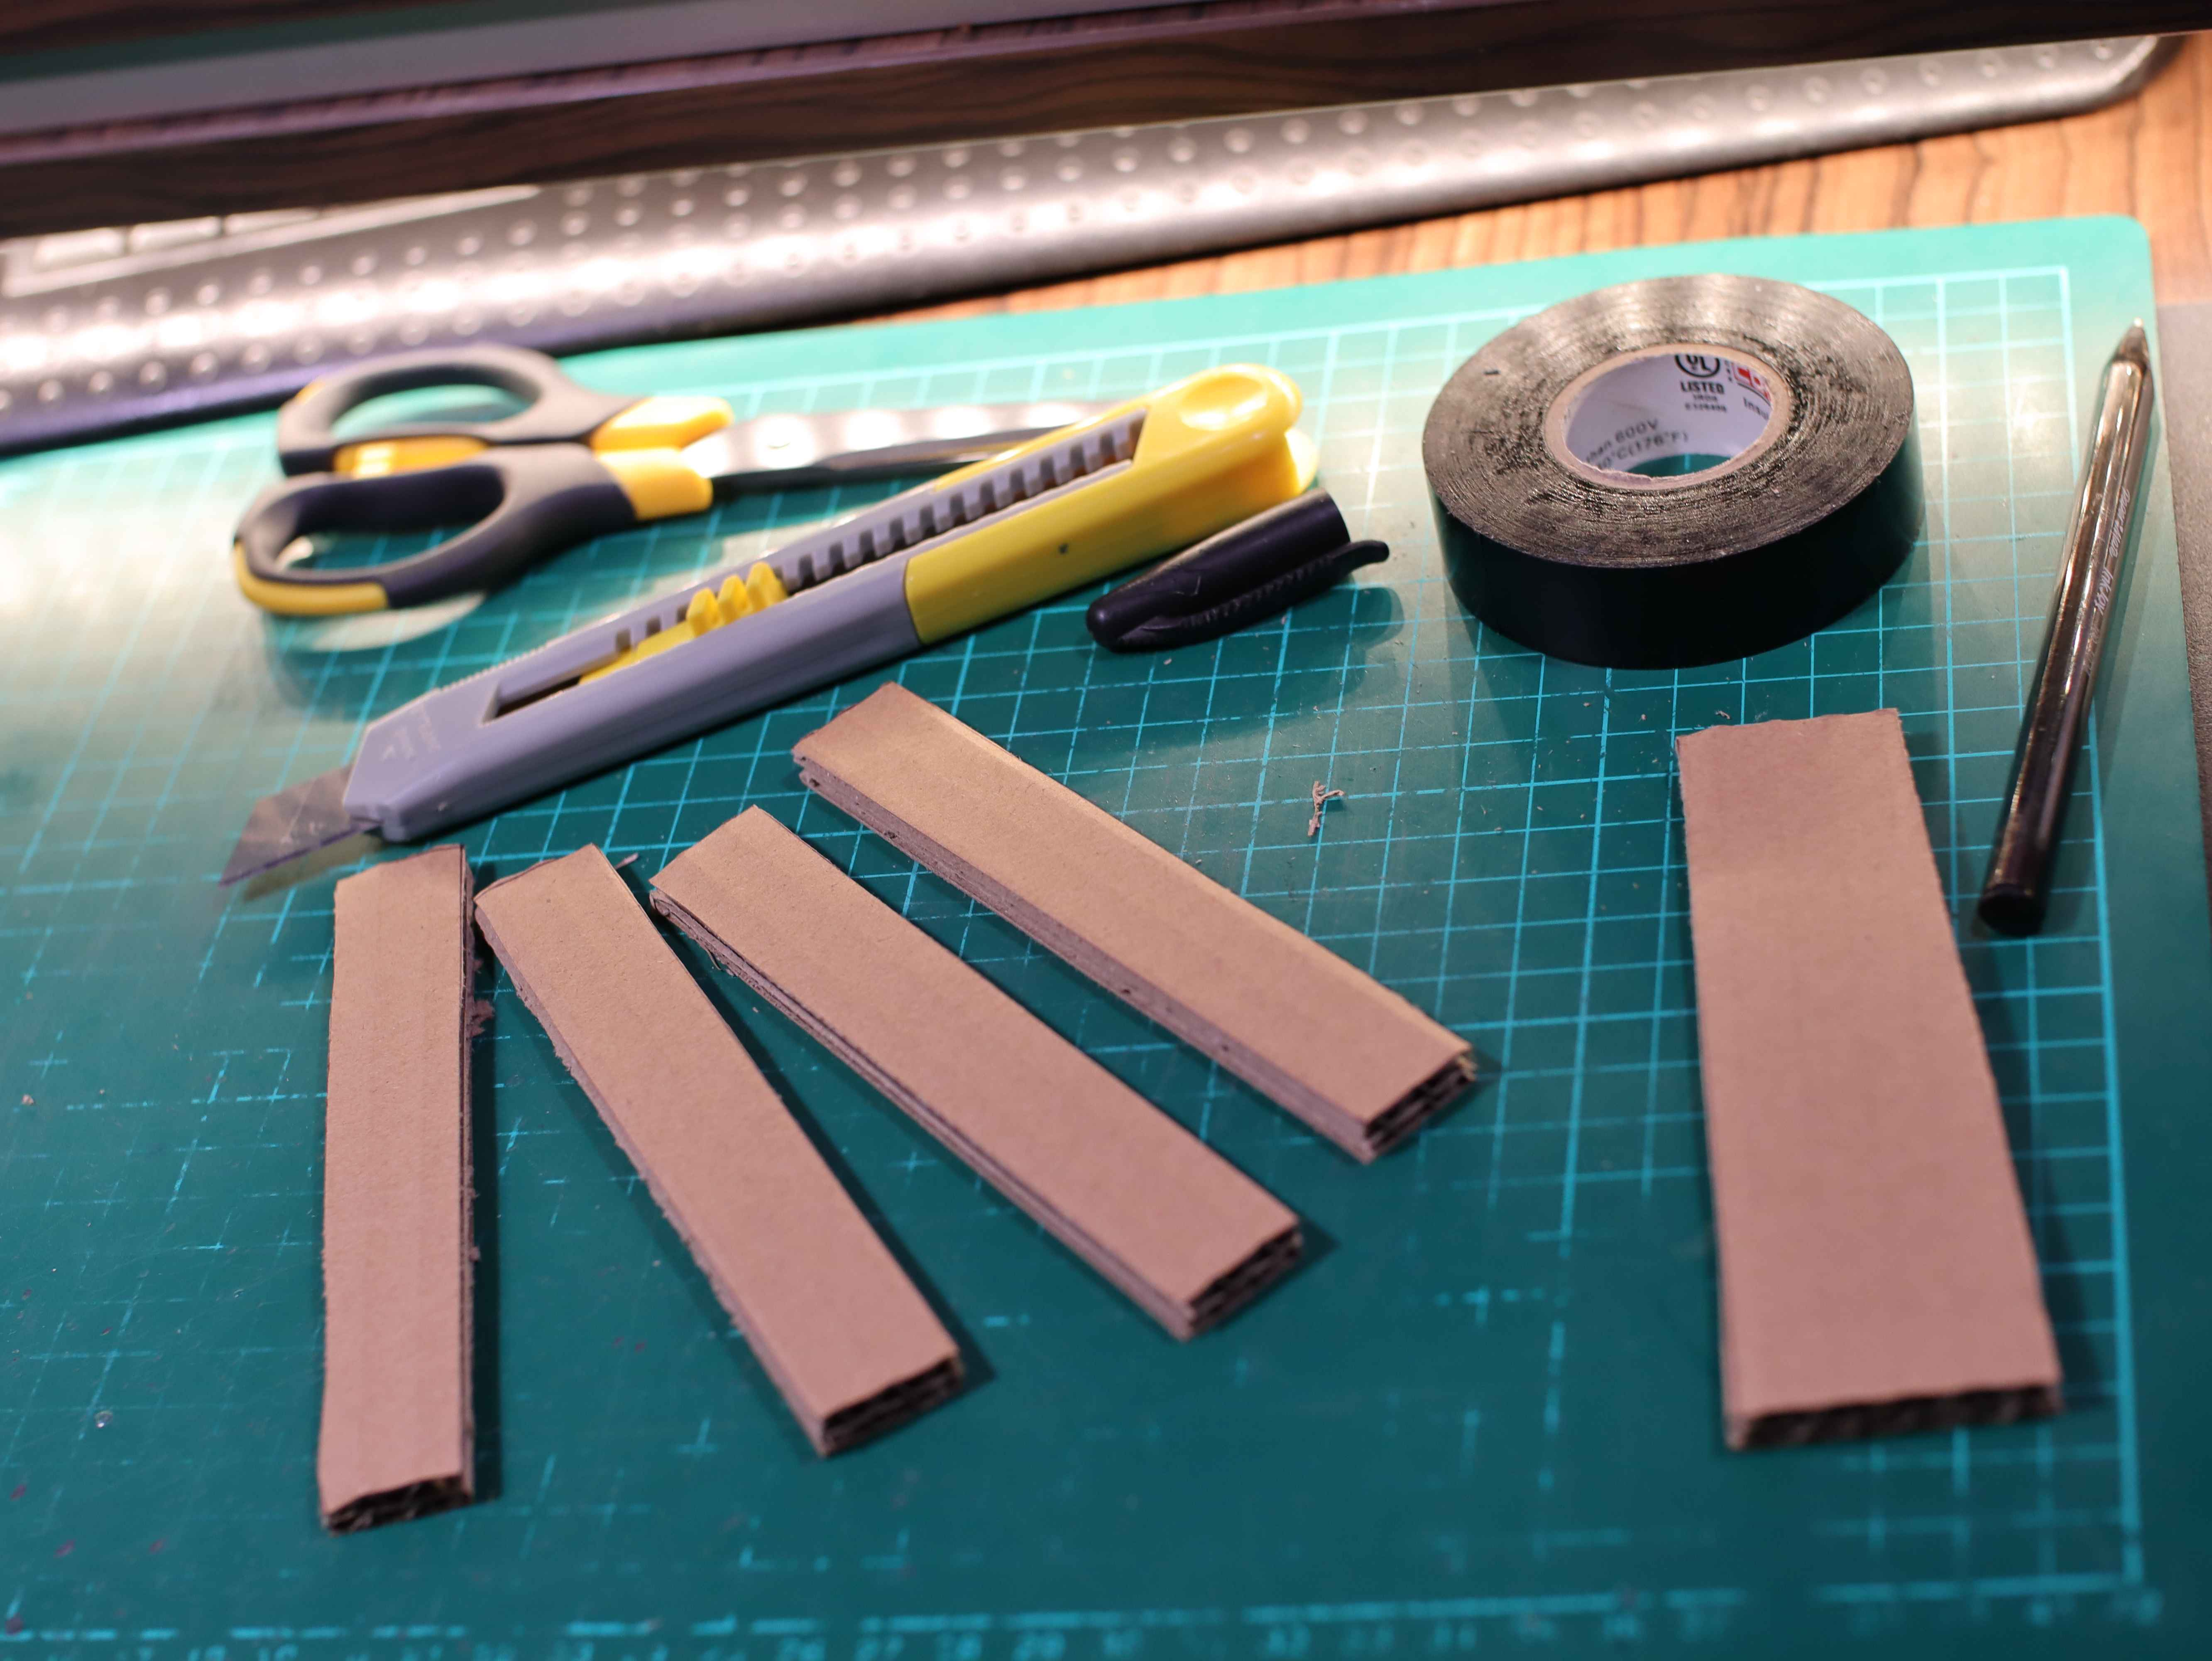 Airsoft battery elements cut out of cardboard. The knife, scissors, pen, electrical tape are on the green service mat.